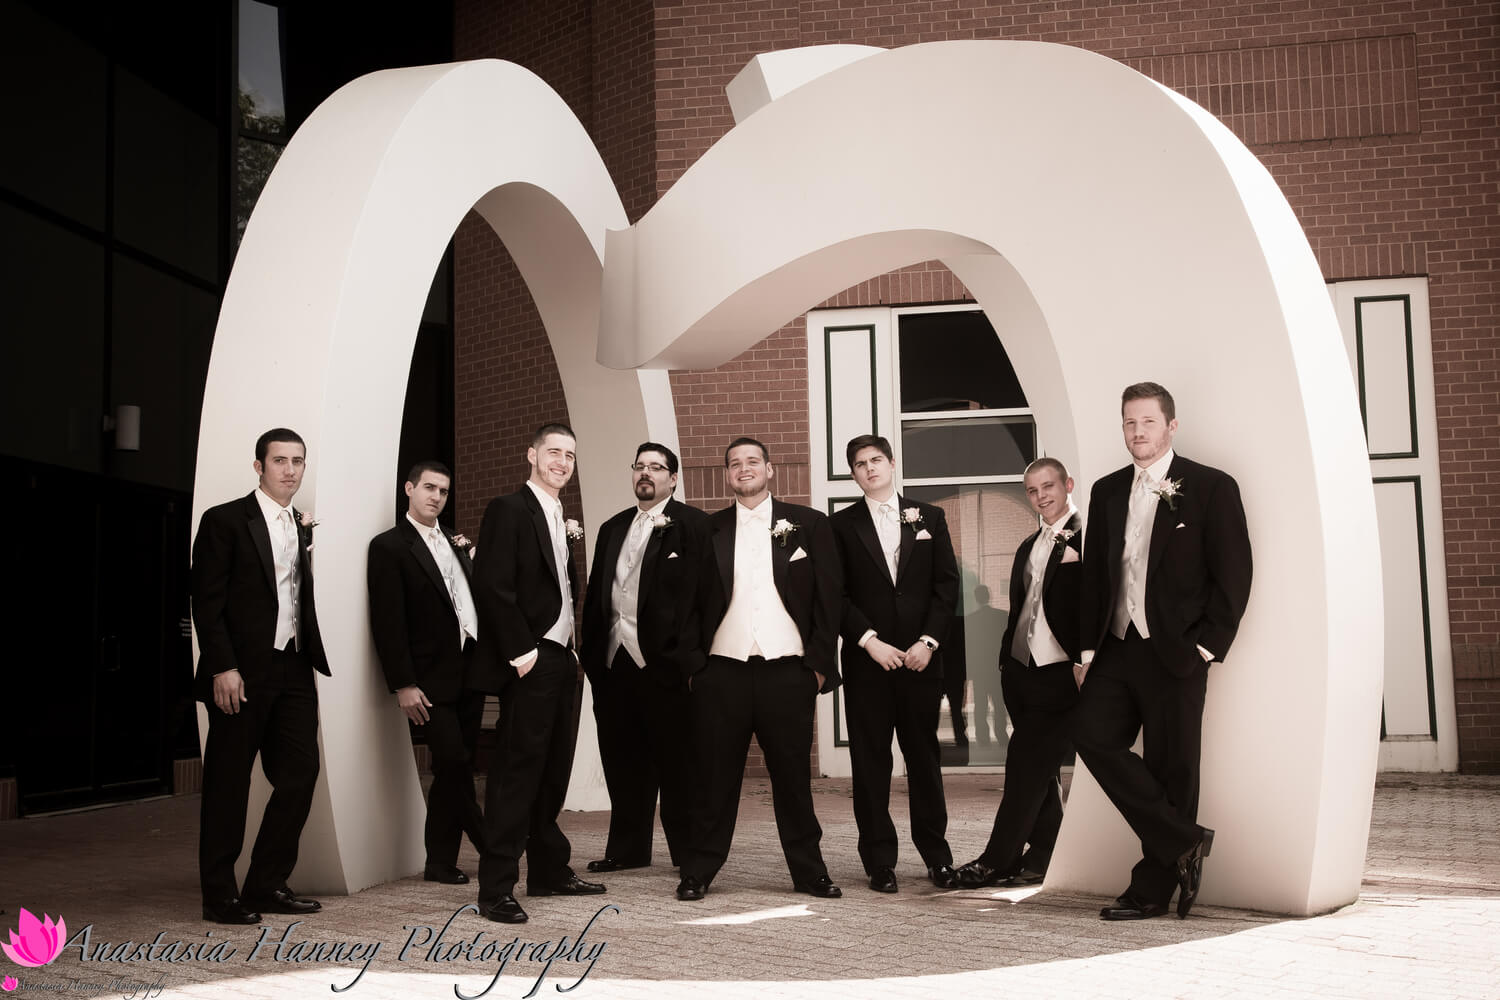 Wedding Photography of Groomsmen outside The Mansion at Main Street in Voorhees New Jersey by Anastasia Hanney Photography AHanneyPhoto